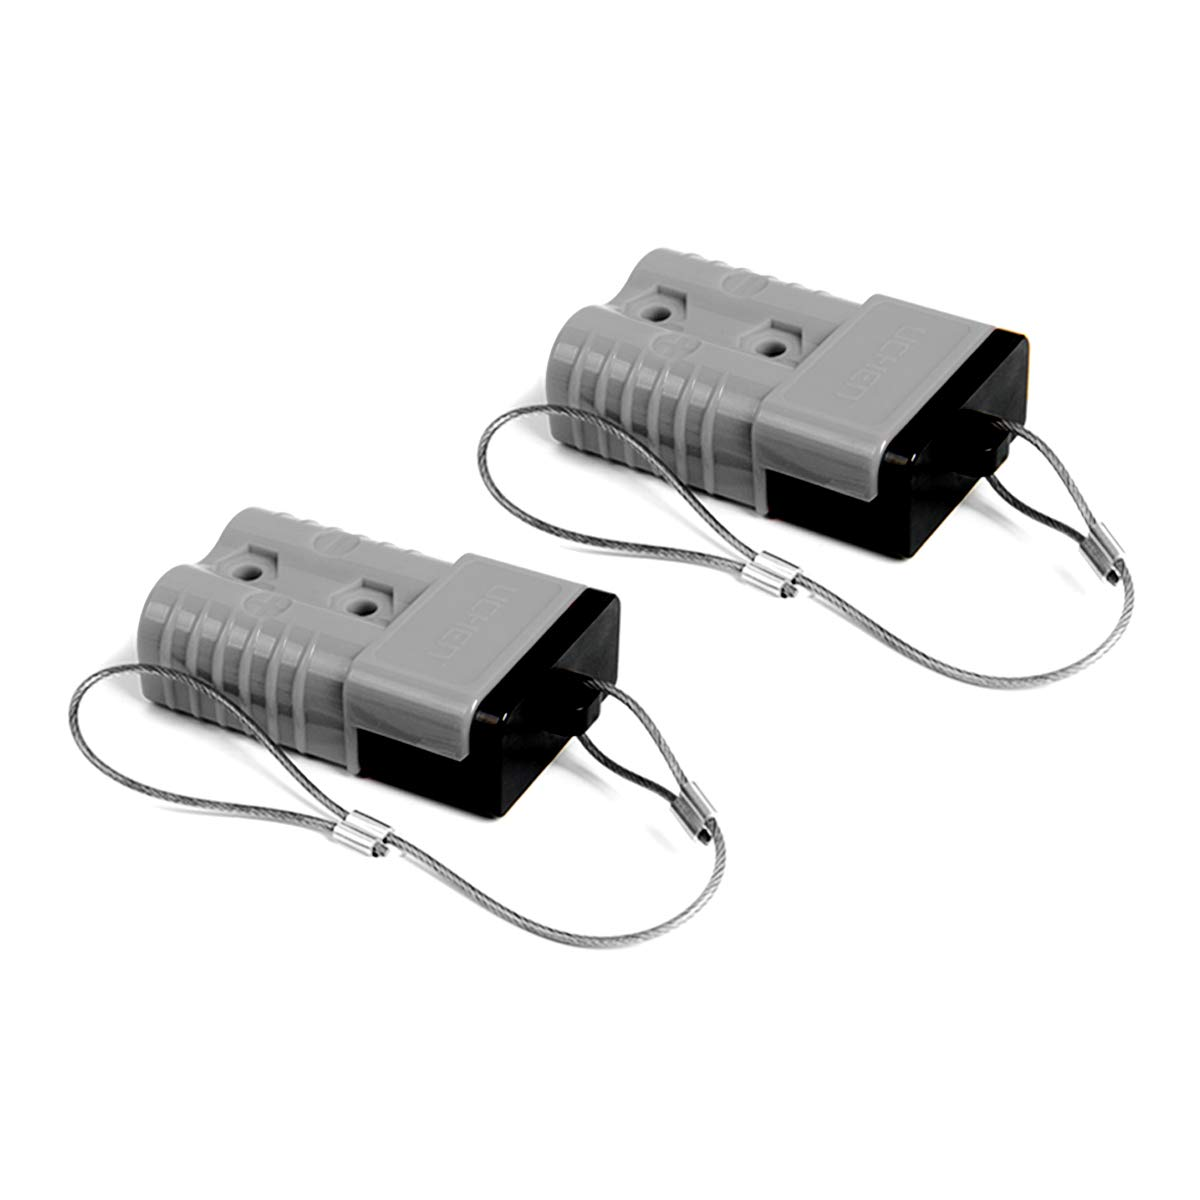 HYCLAT Gray 2-4 Gauge Battery Quick Connect/Disconnect Wire Harness Plug Connector Recovery Winch Trailer (2 Pack)